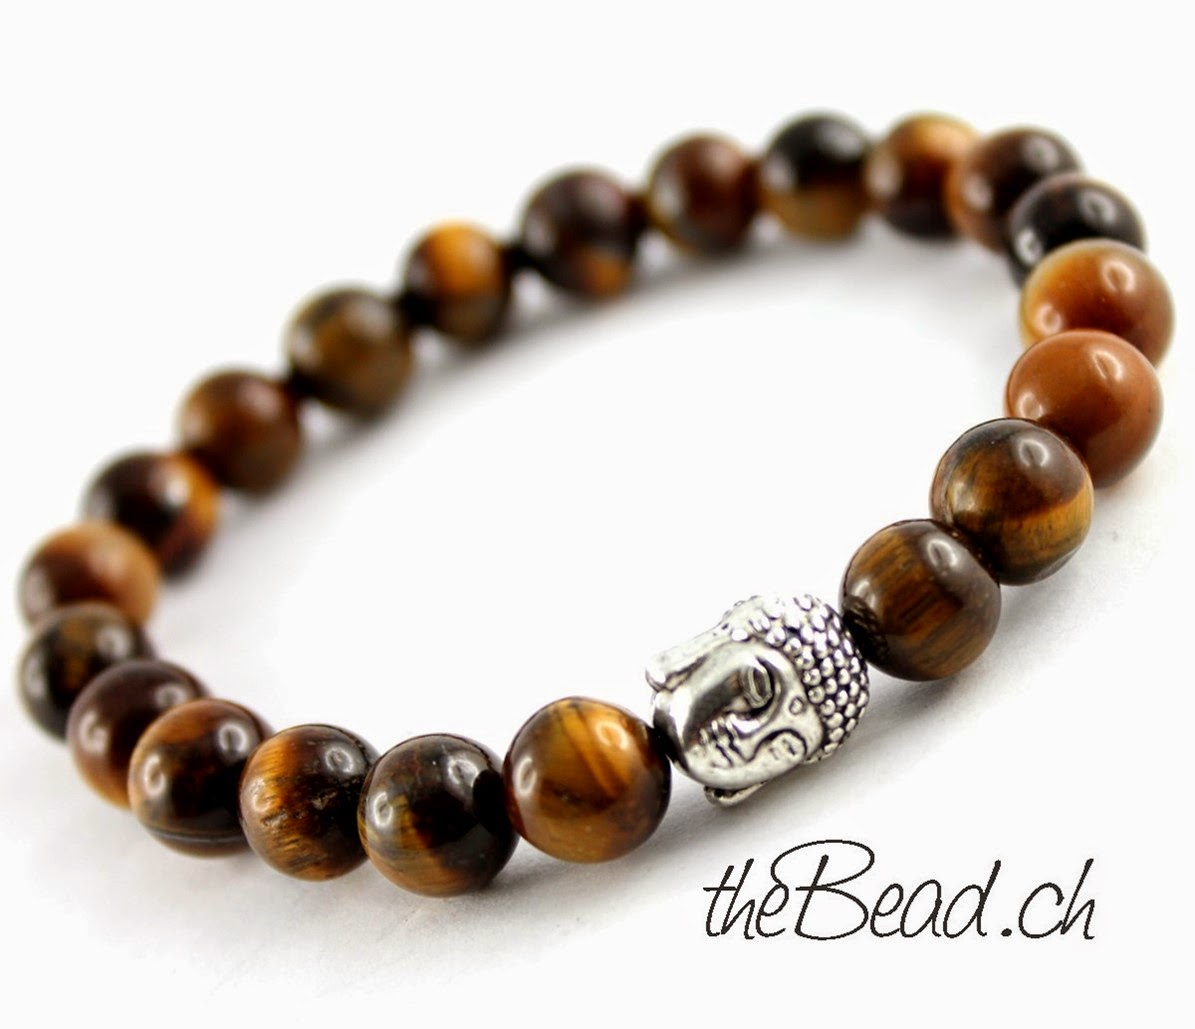 http://www.thebead.ch/product_info.php?info=p891_tigerauge-armband.html